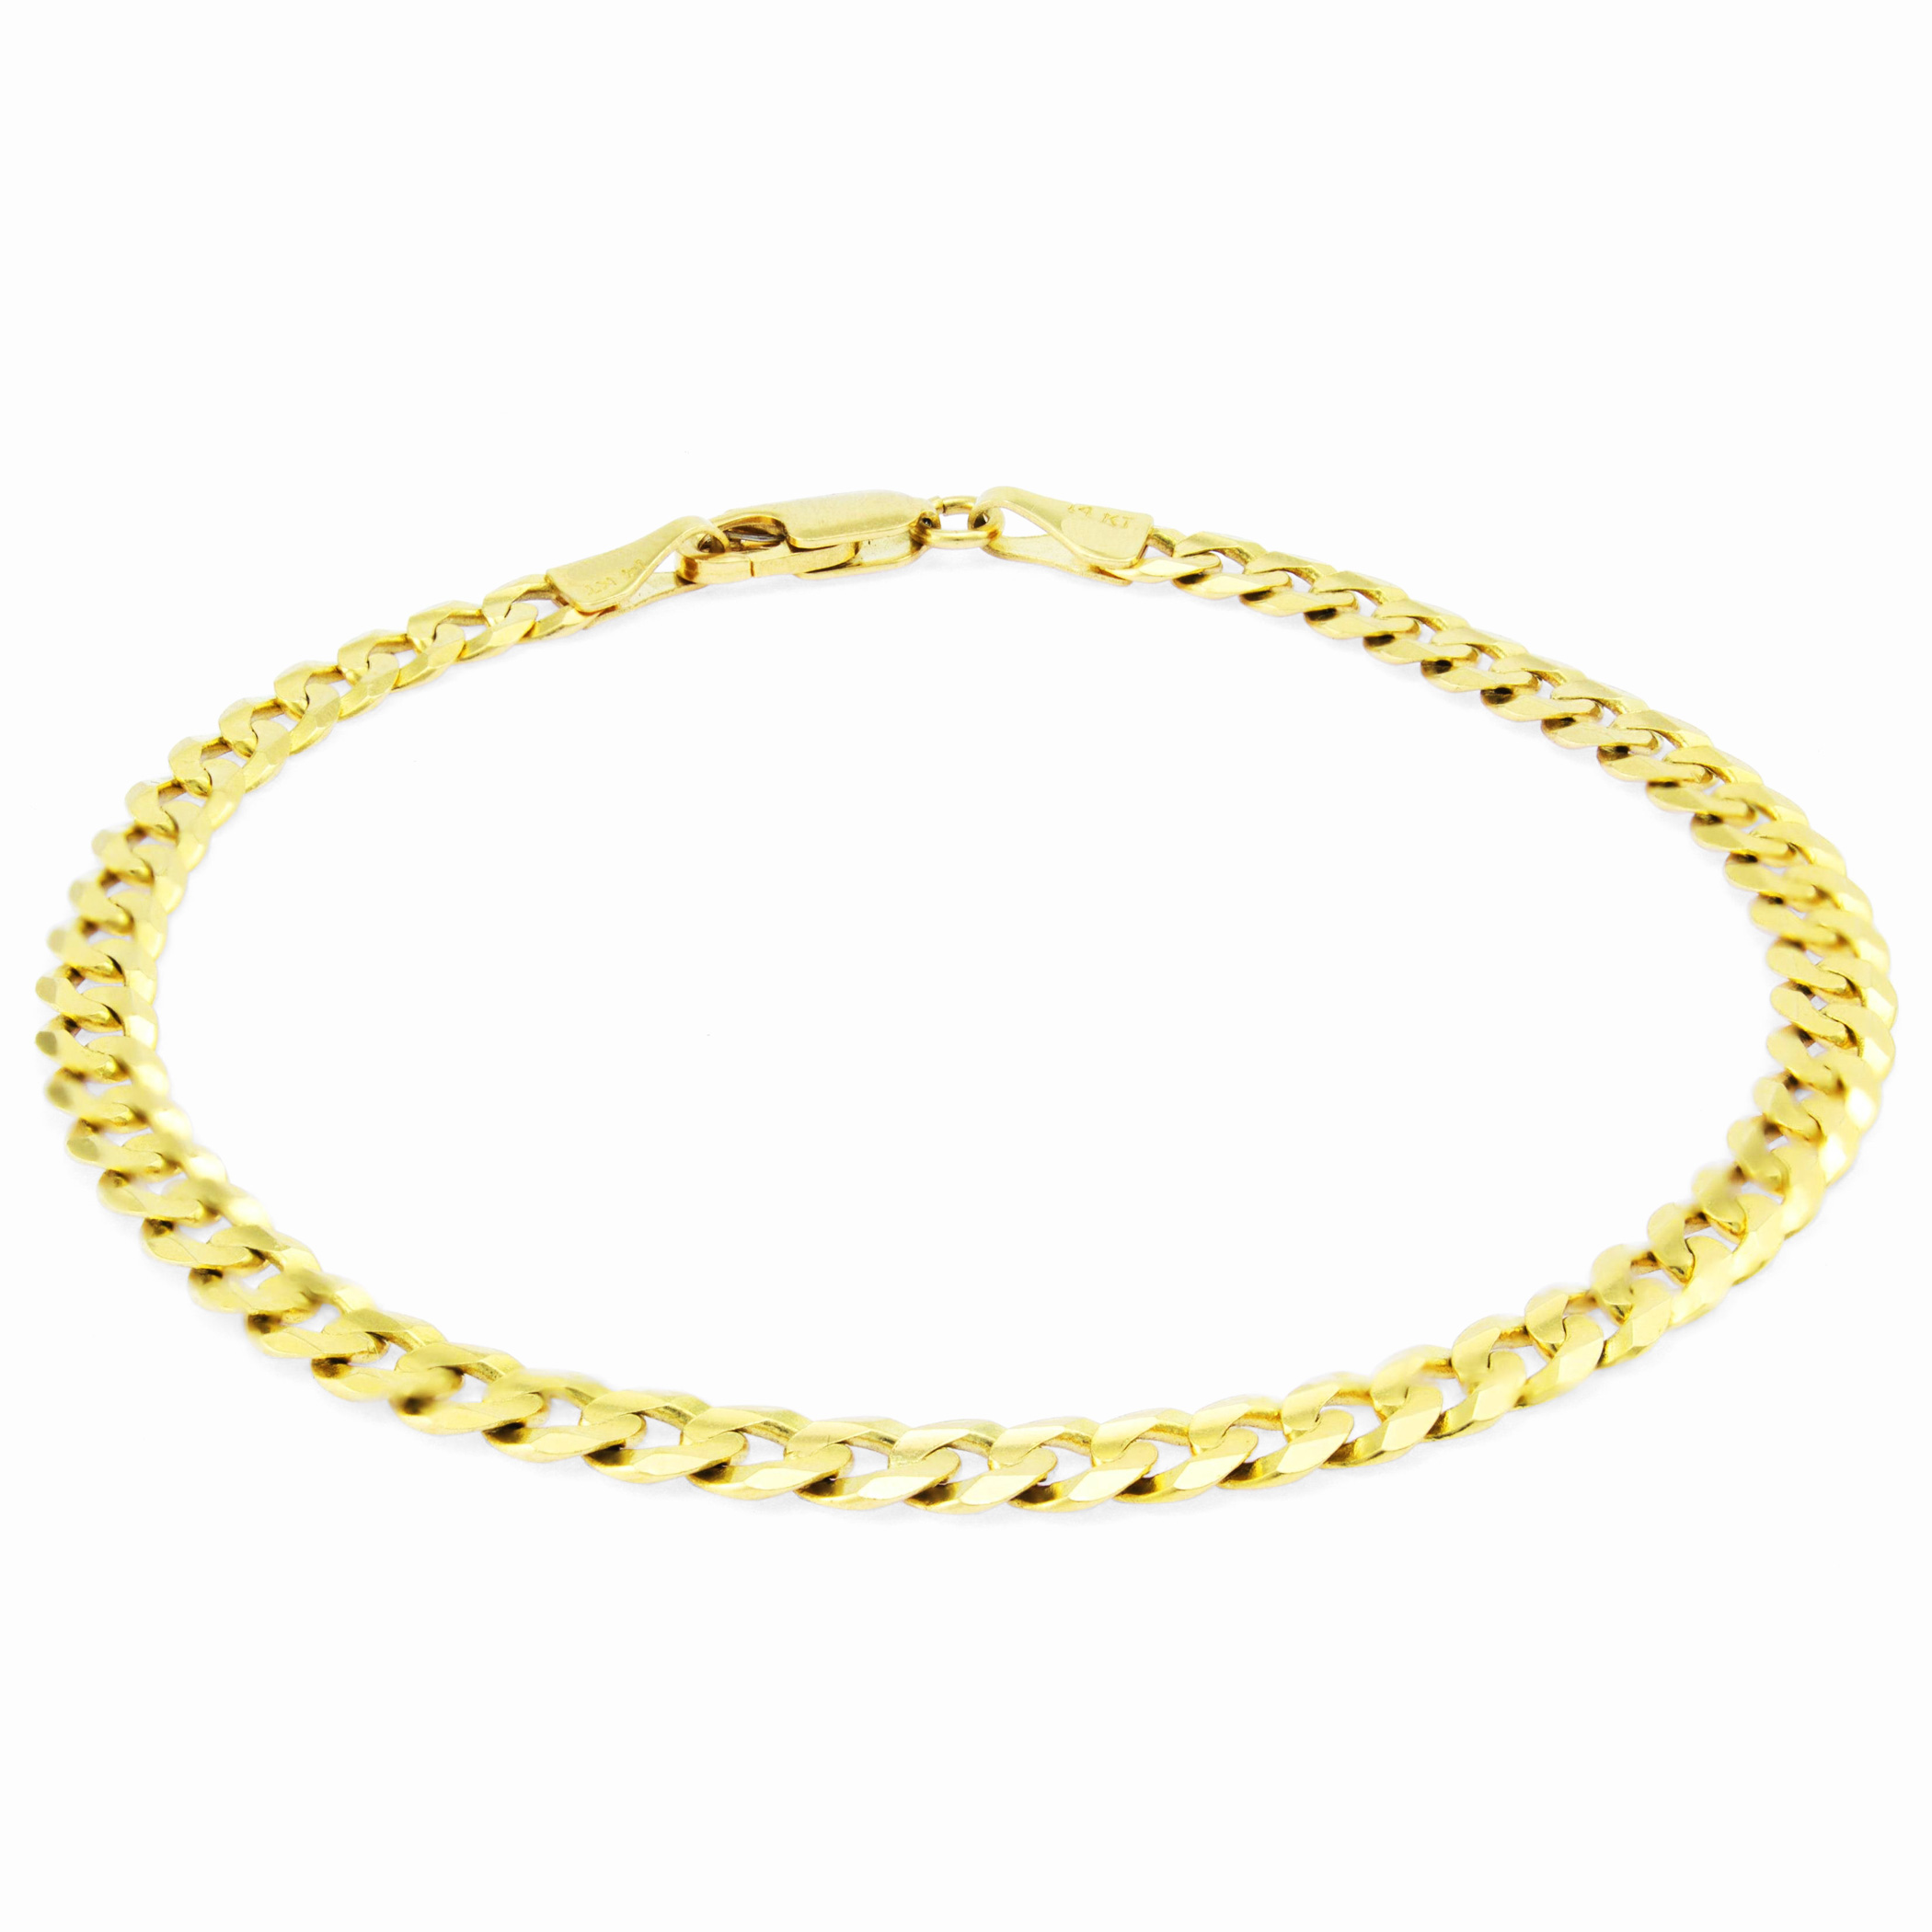 Real-14K-Yellow-Gold-4-5mm-Cuban-Curb-Chain-Link-Bracelet-Anklet-Chain-7-034-8-034-9-034 thumbnail 16